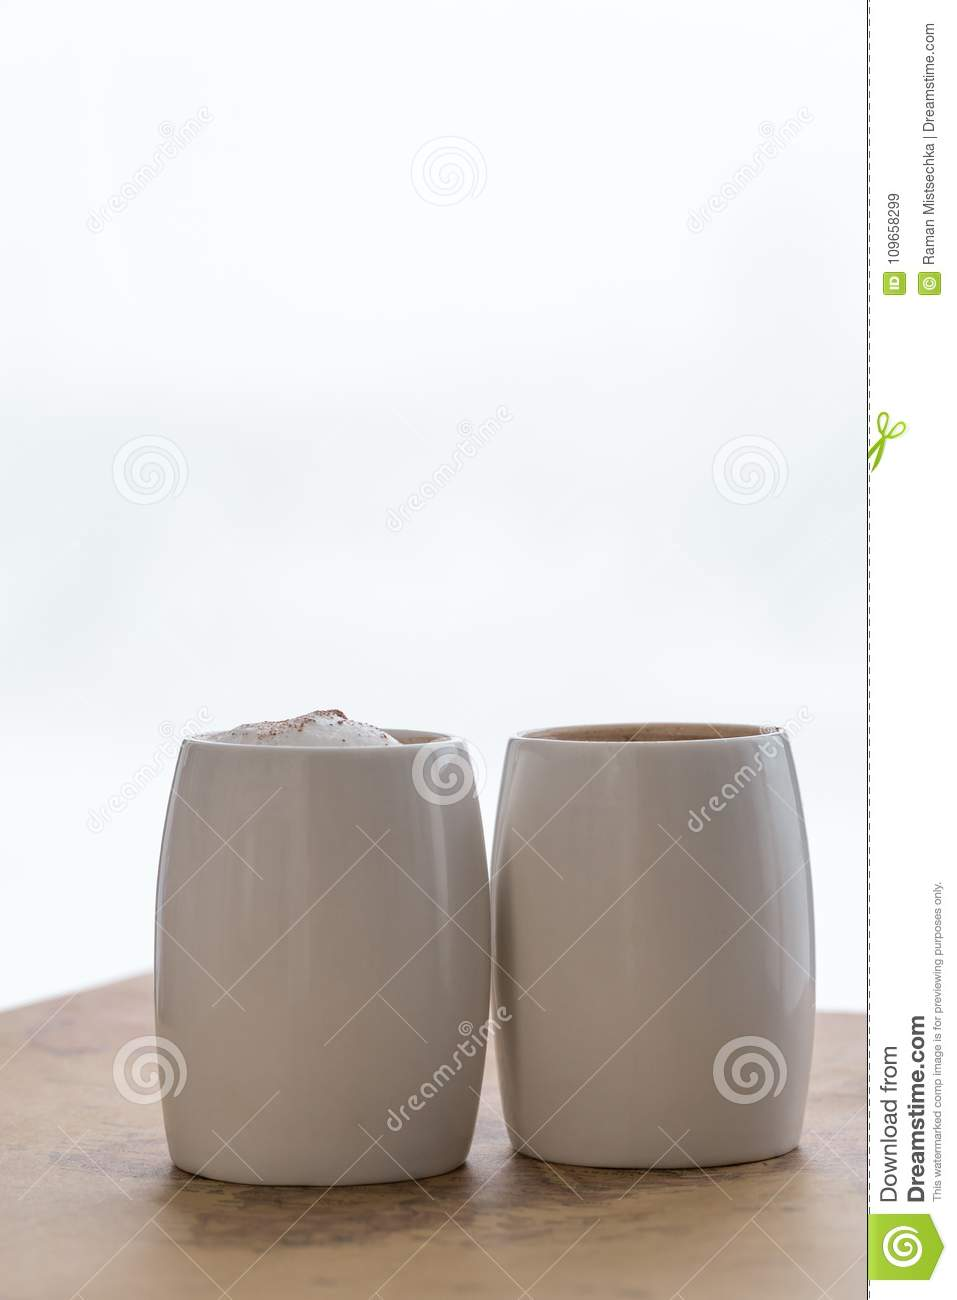 2898df82ac6 Two white cups of coffee stand on a world map against a light background.